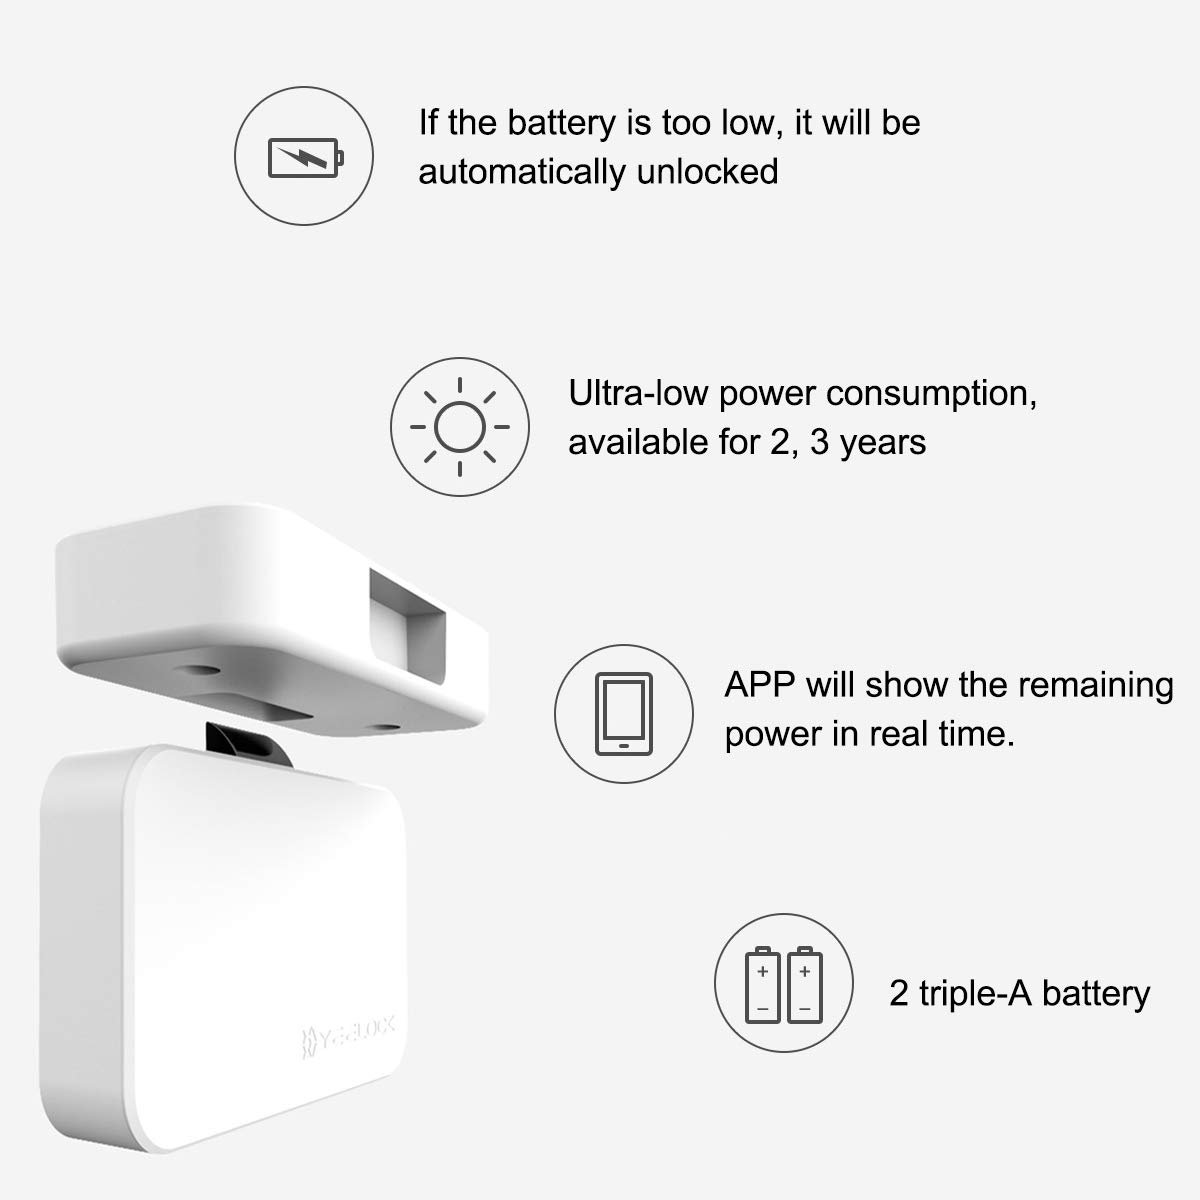 Cabinet Lock, Keyless Smart Lock for Drawer and Cabinet Bluetooth Smart Lock Perfectly for Bookcase, Bedside Table or Filing Cabinet, Support Android/iOS APP Unlock, Authorized Electric Key by YEELOC (Image #6)